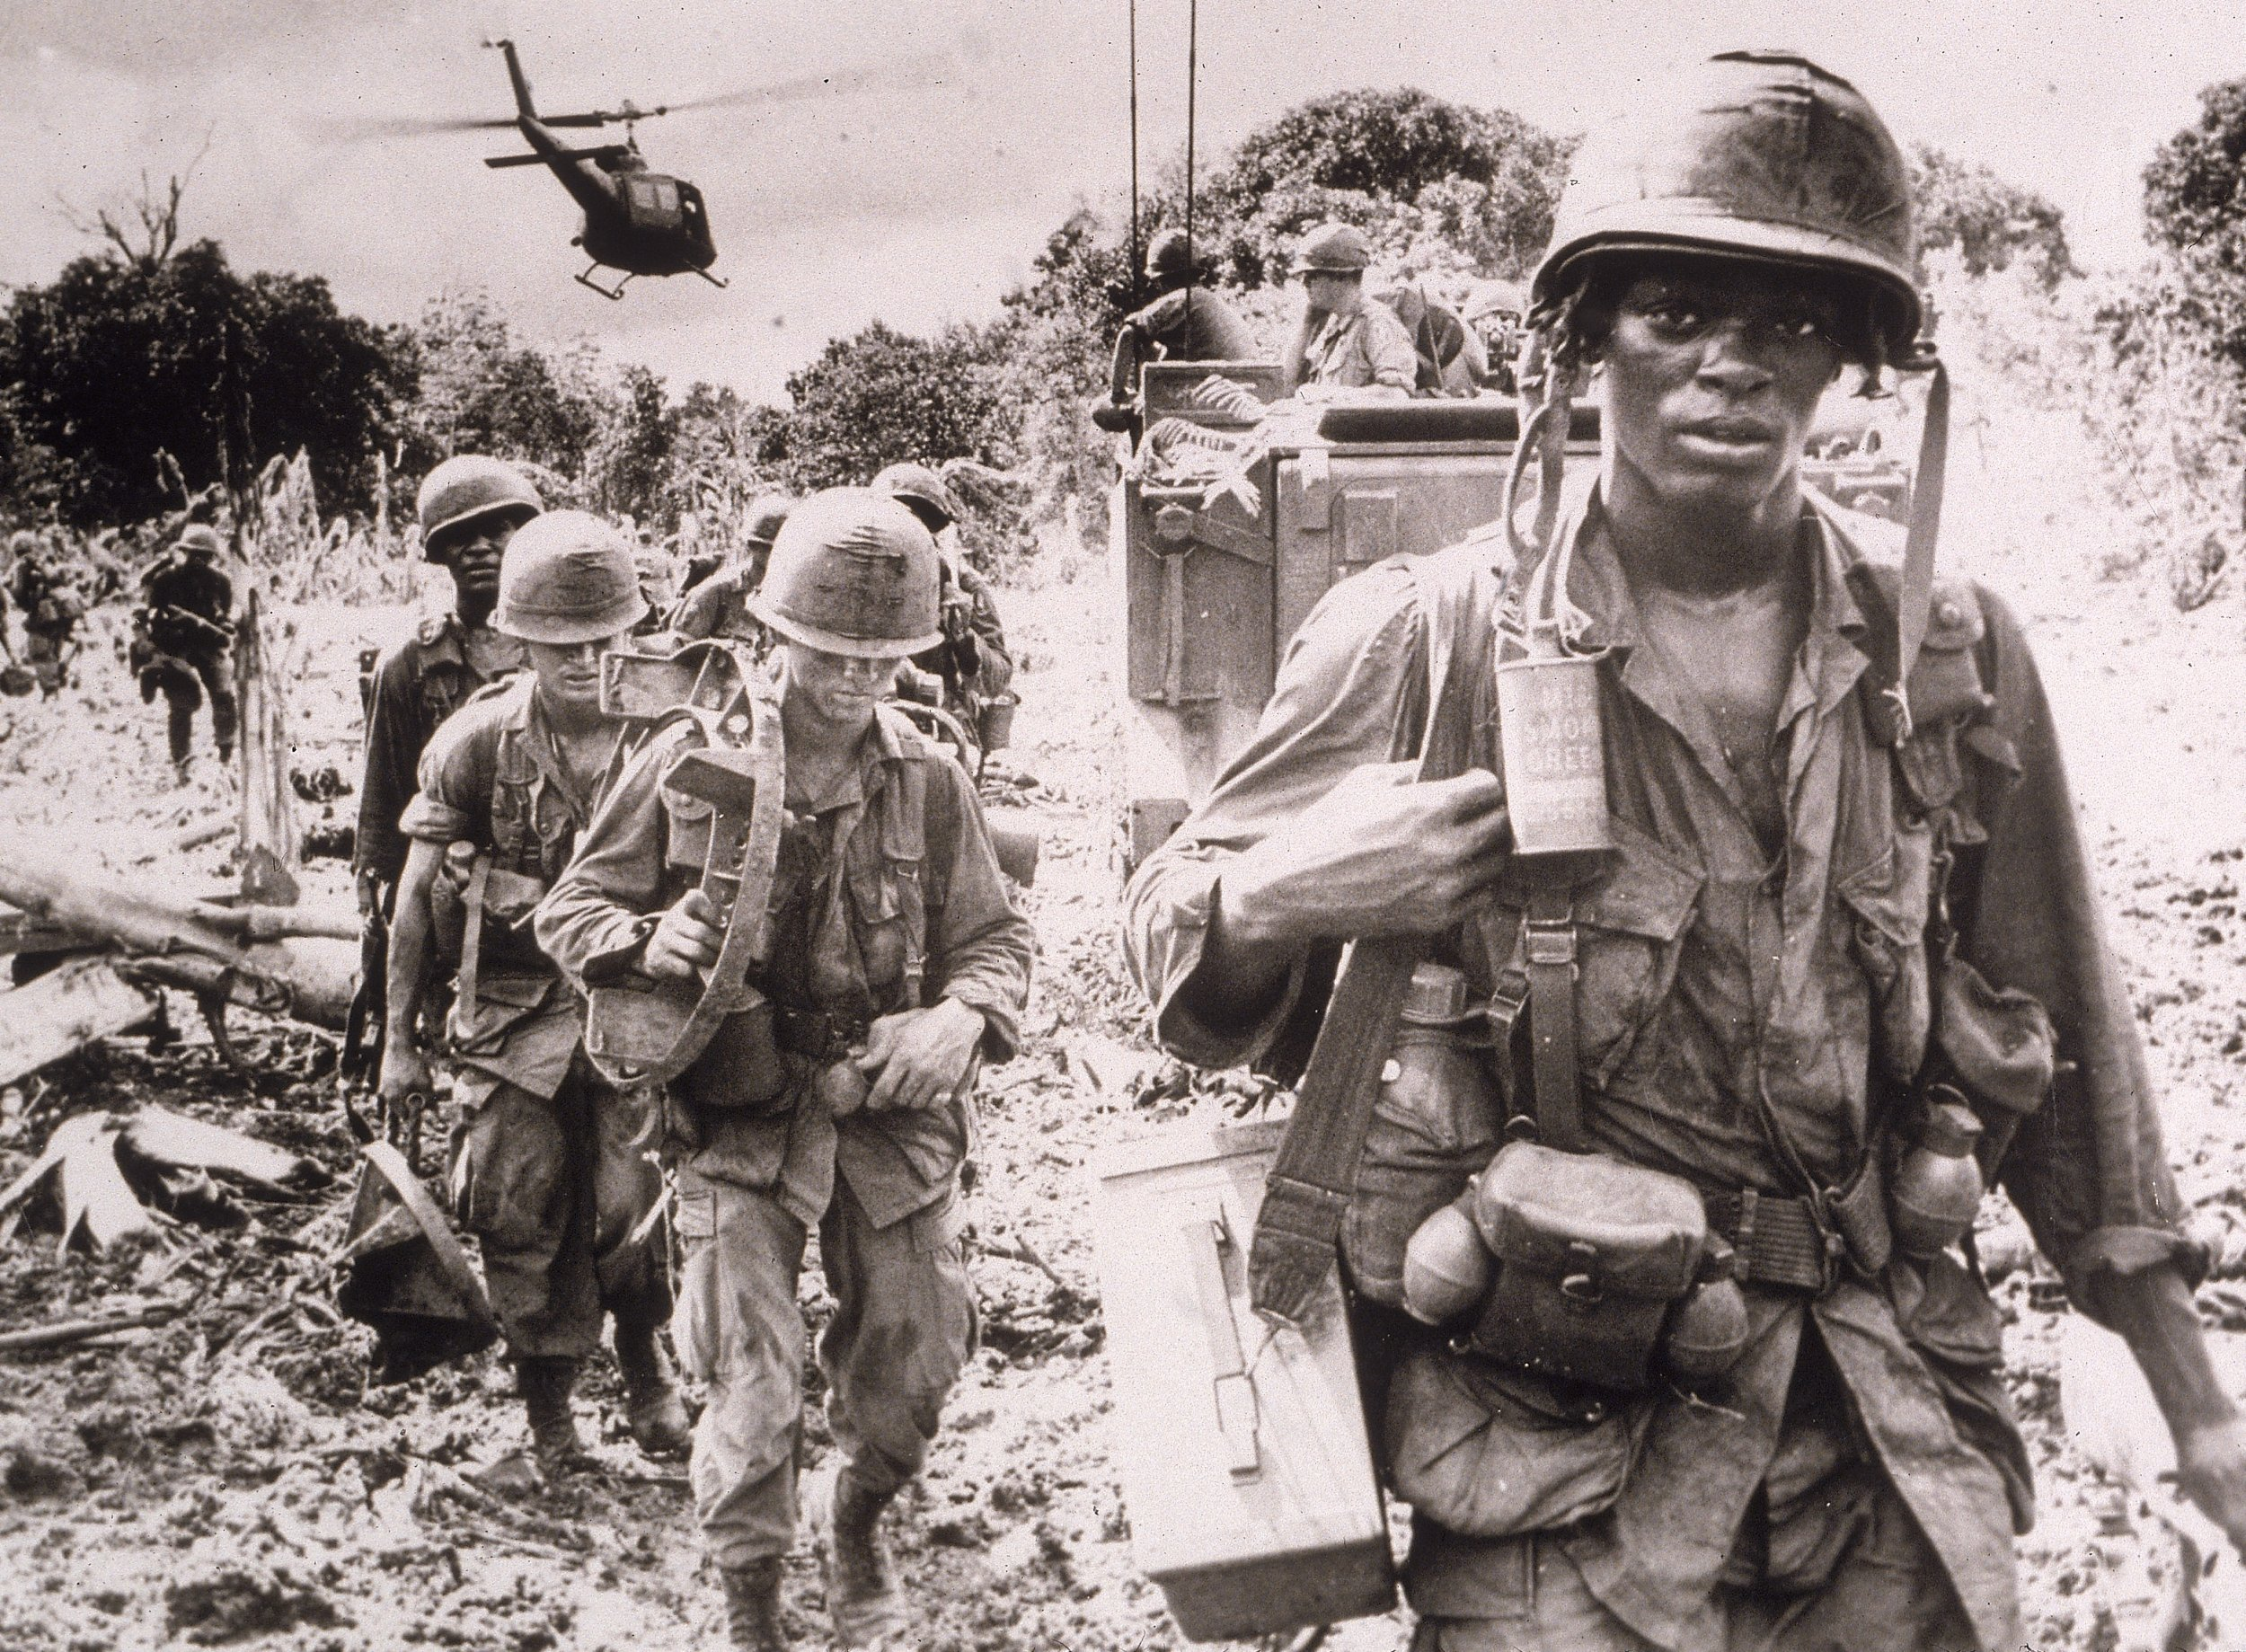 Vietnam War Documentary On Pbs Could Trigger Ptsd For